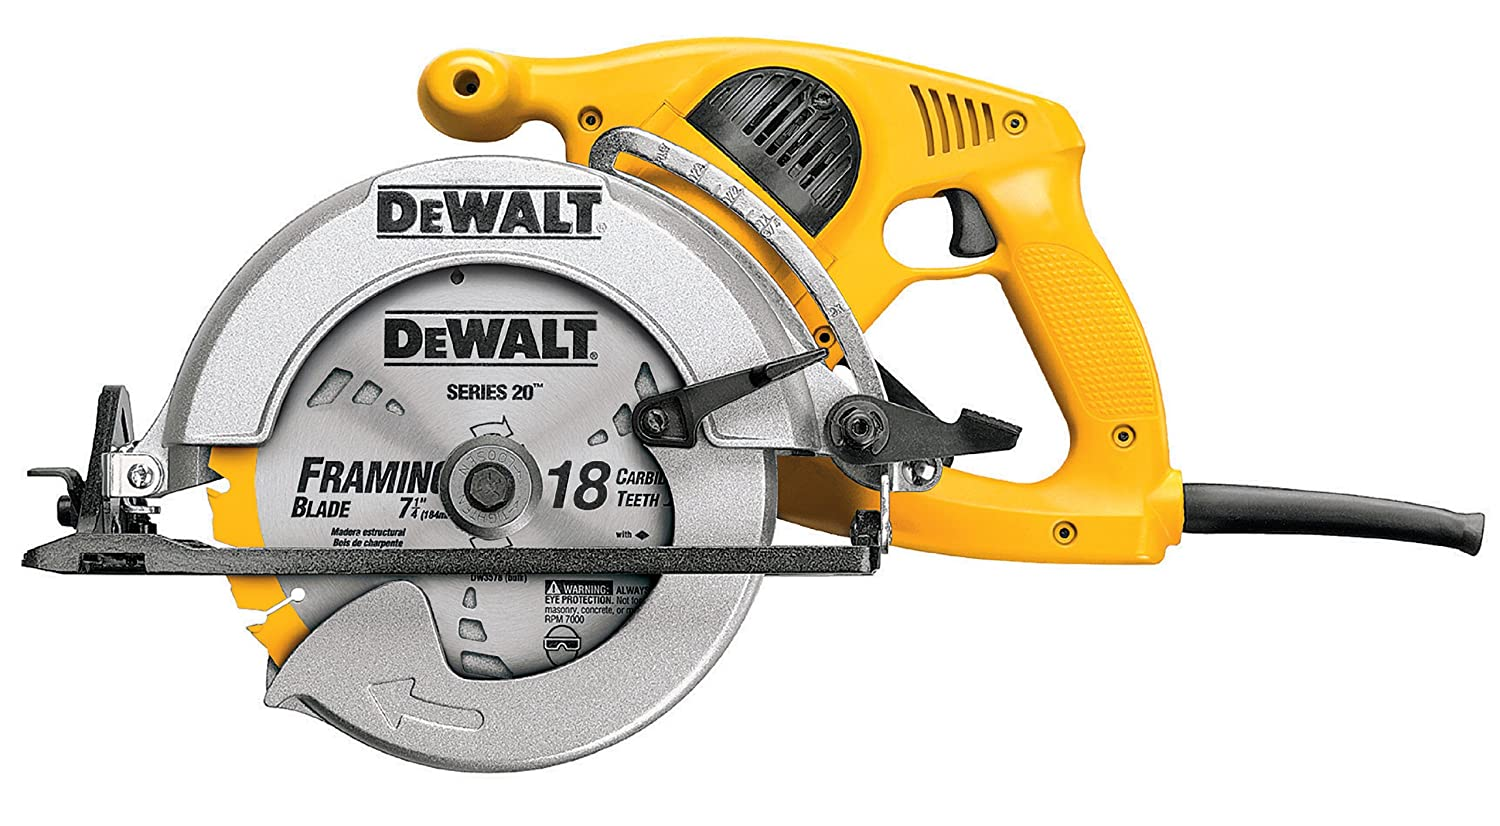 Dewalt dw378g 7 14 inch high torque framing saw power circular dewalt dw378g 7 14 inch high torque framing saw power circular saws amazon greentooth Choice Image